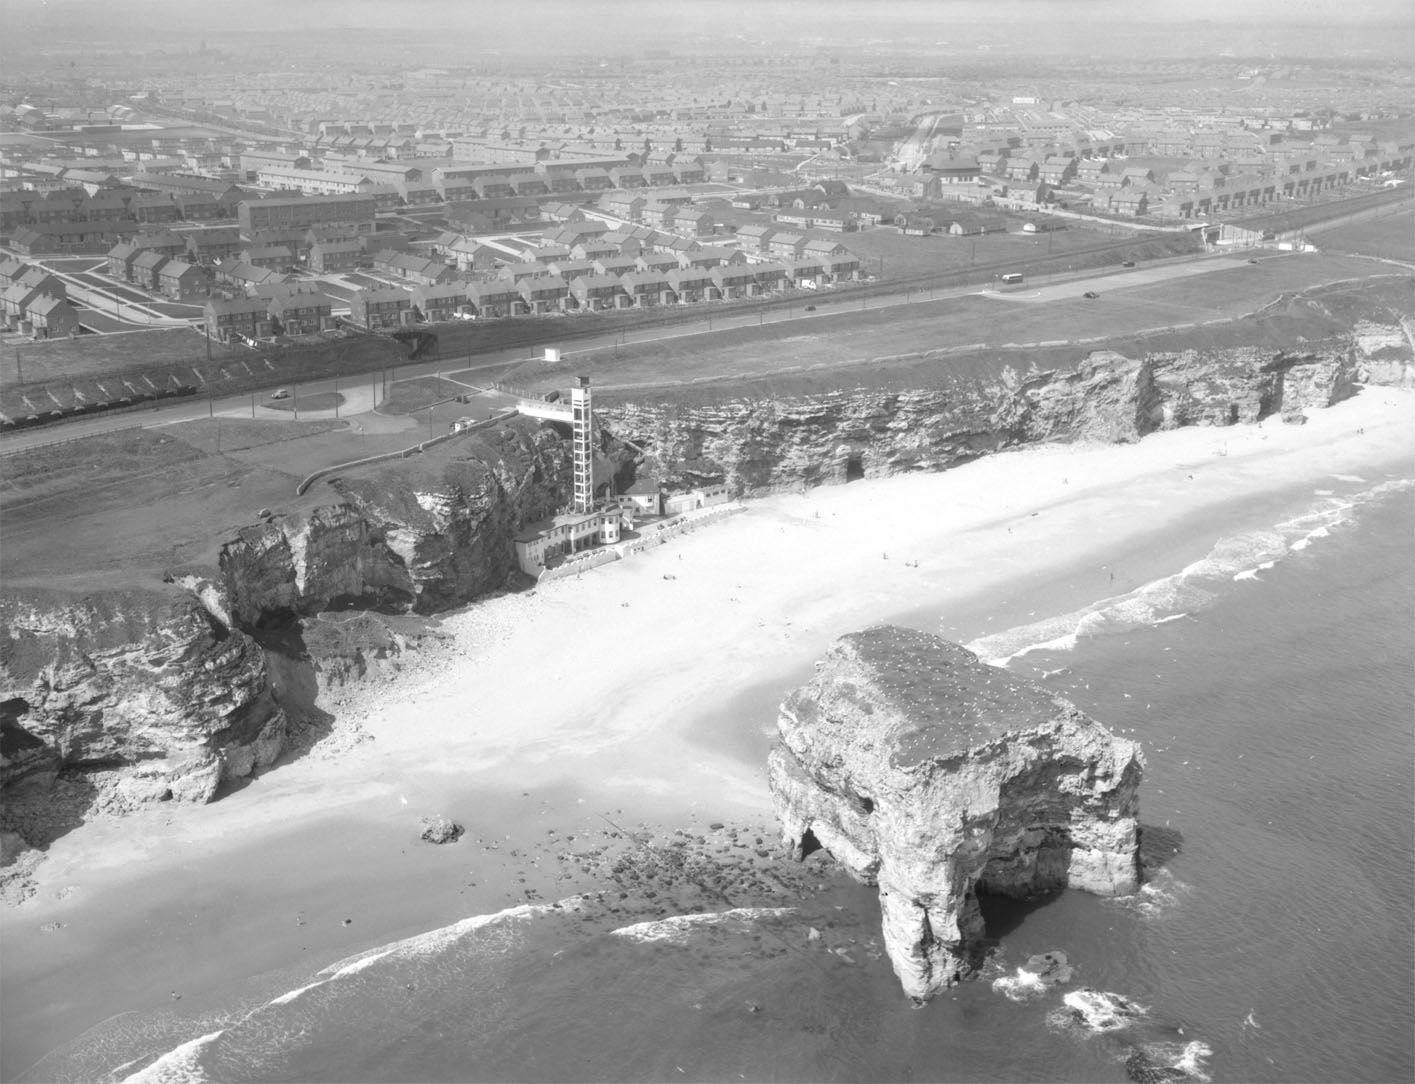 Aerial view of Marsden Grotto, May 1953 (TWAM ref. DT.TUR/2/9996B)